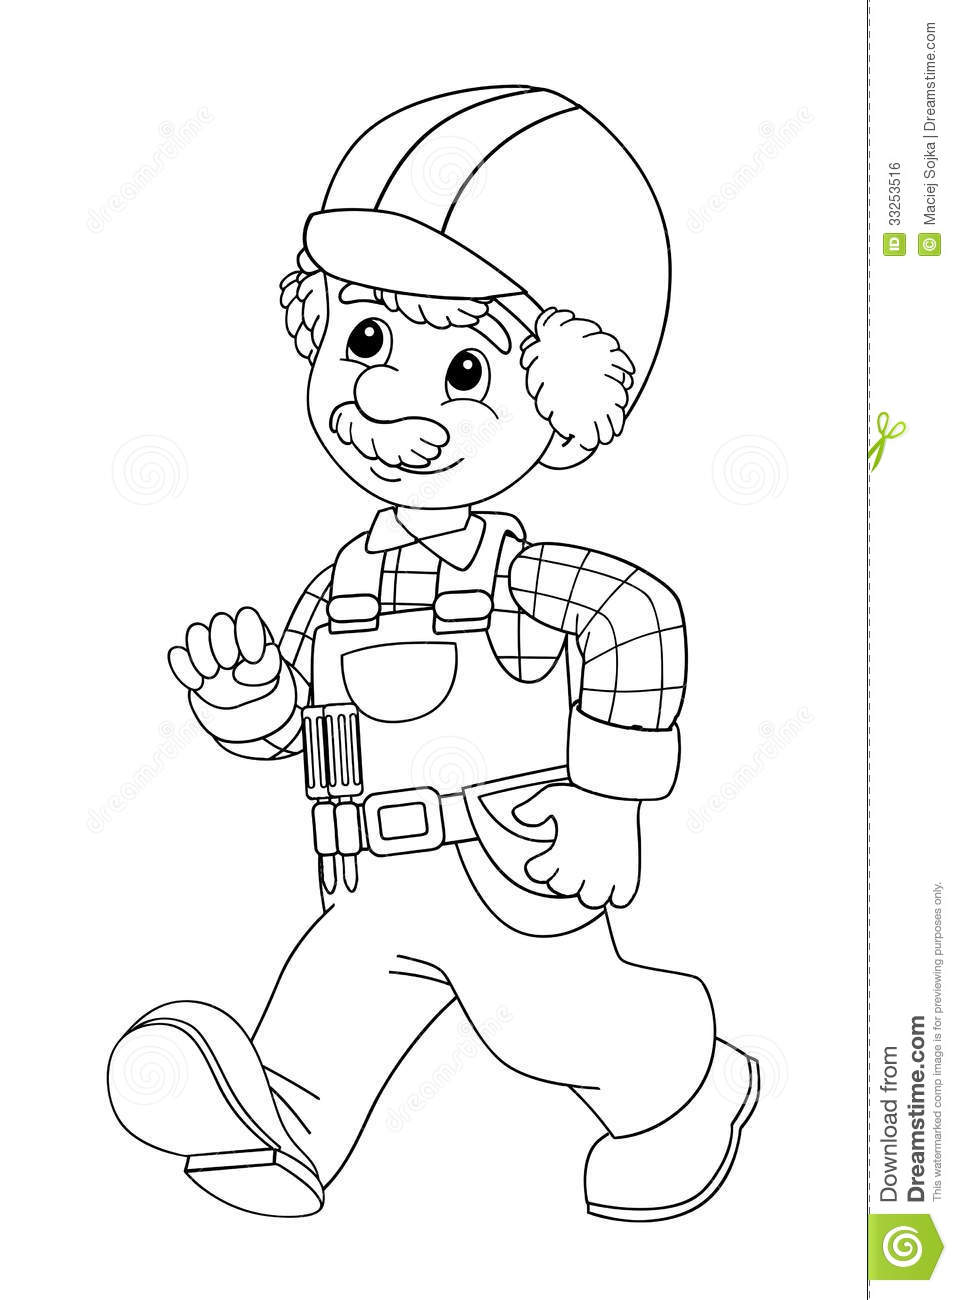 The Coloring Plate - Construction Worker - Illustration For The ...